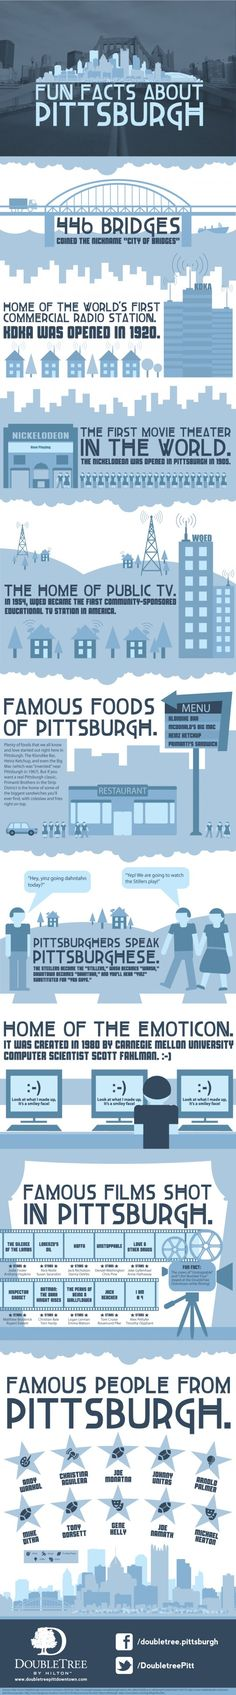 Infographic: Fun Facts About Pittsburgh - While not everyone around the country may realize it, Pittsburgh is the home of many nationally embraced inventions and celebrities. With a long history for innovation and a surprisingly scenic environment given its industrial reputation, Pittsburgh is one of America's best kept secrets, and the DoubleTree Pittsburgh Downtown is right at the heart of it.